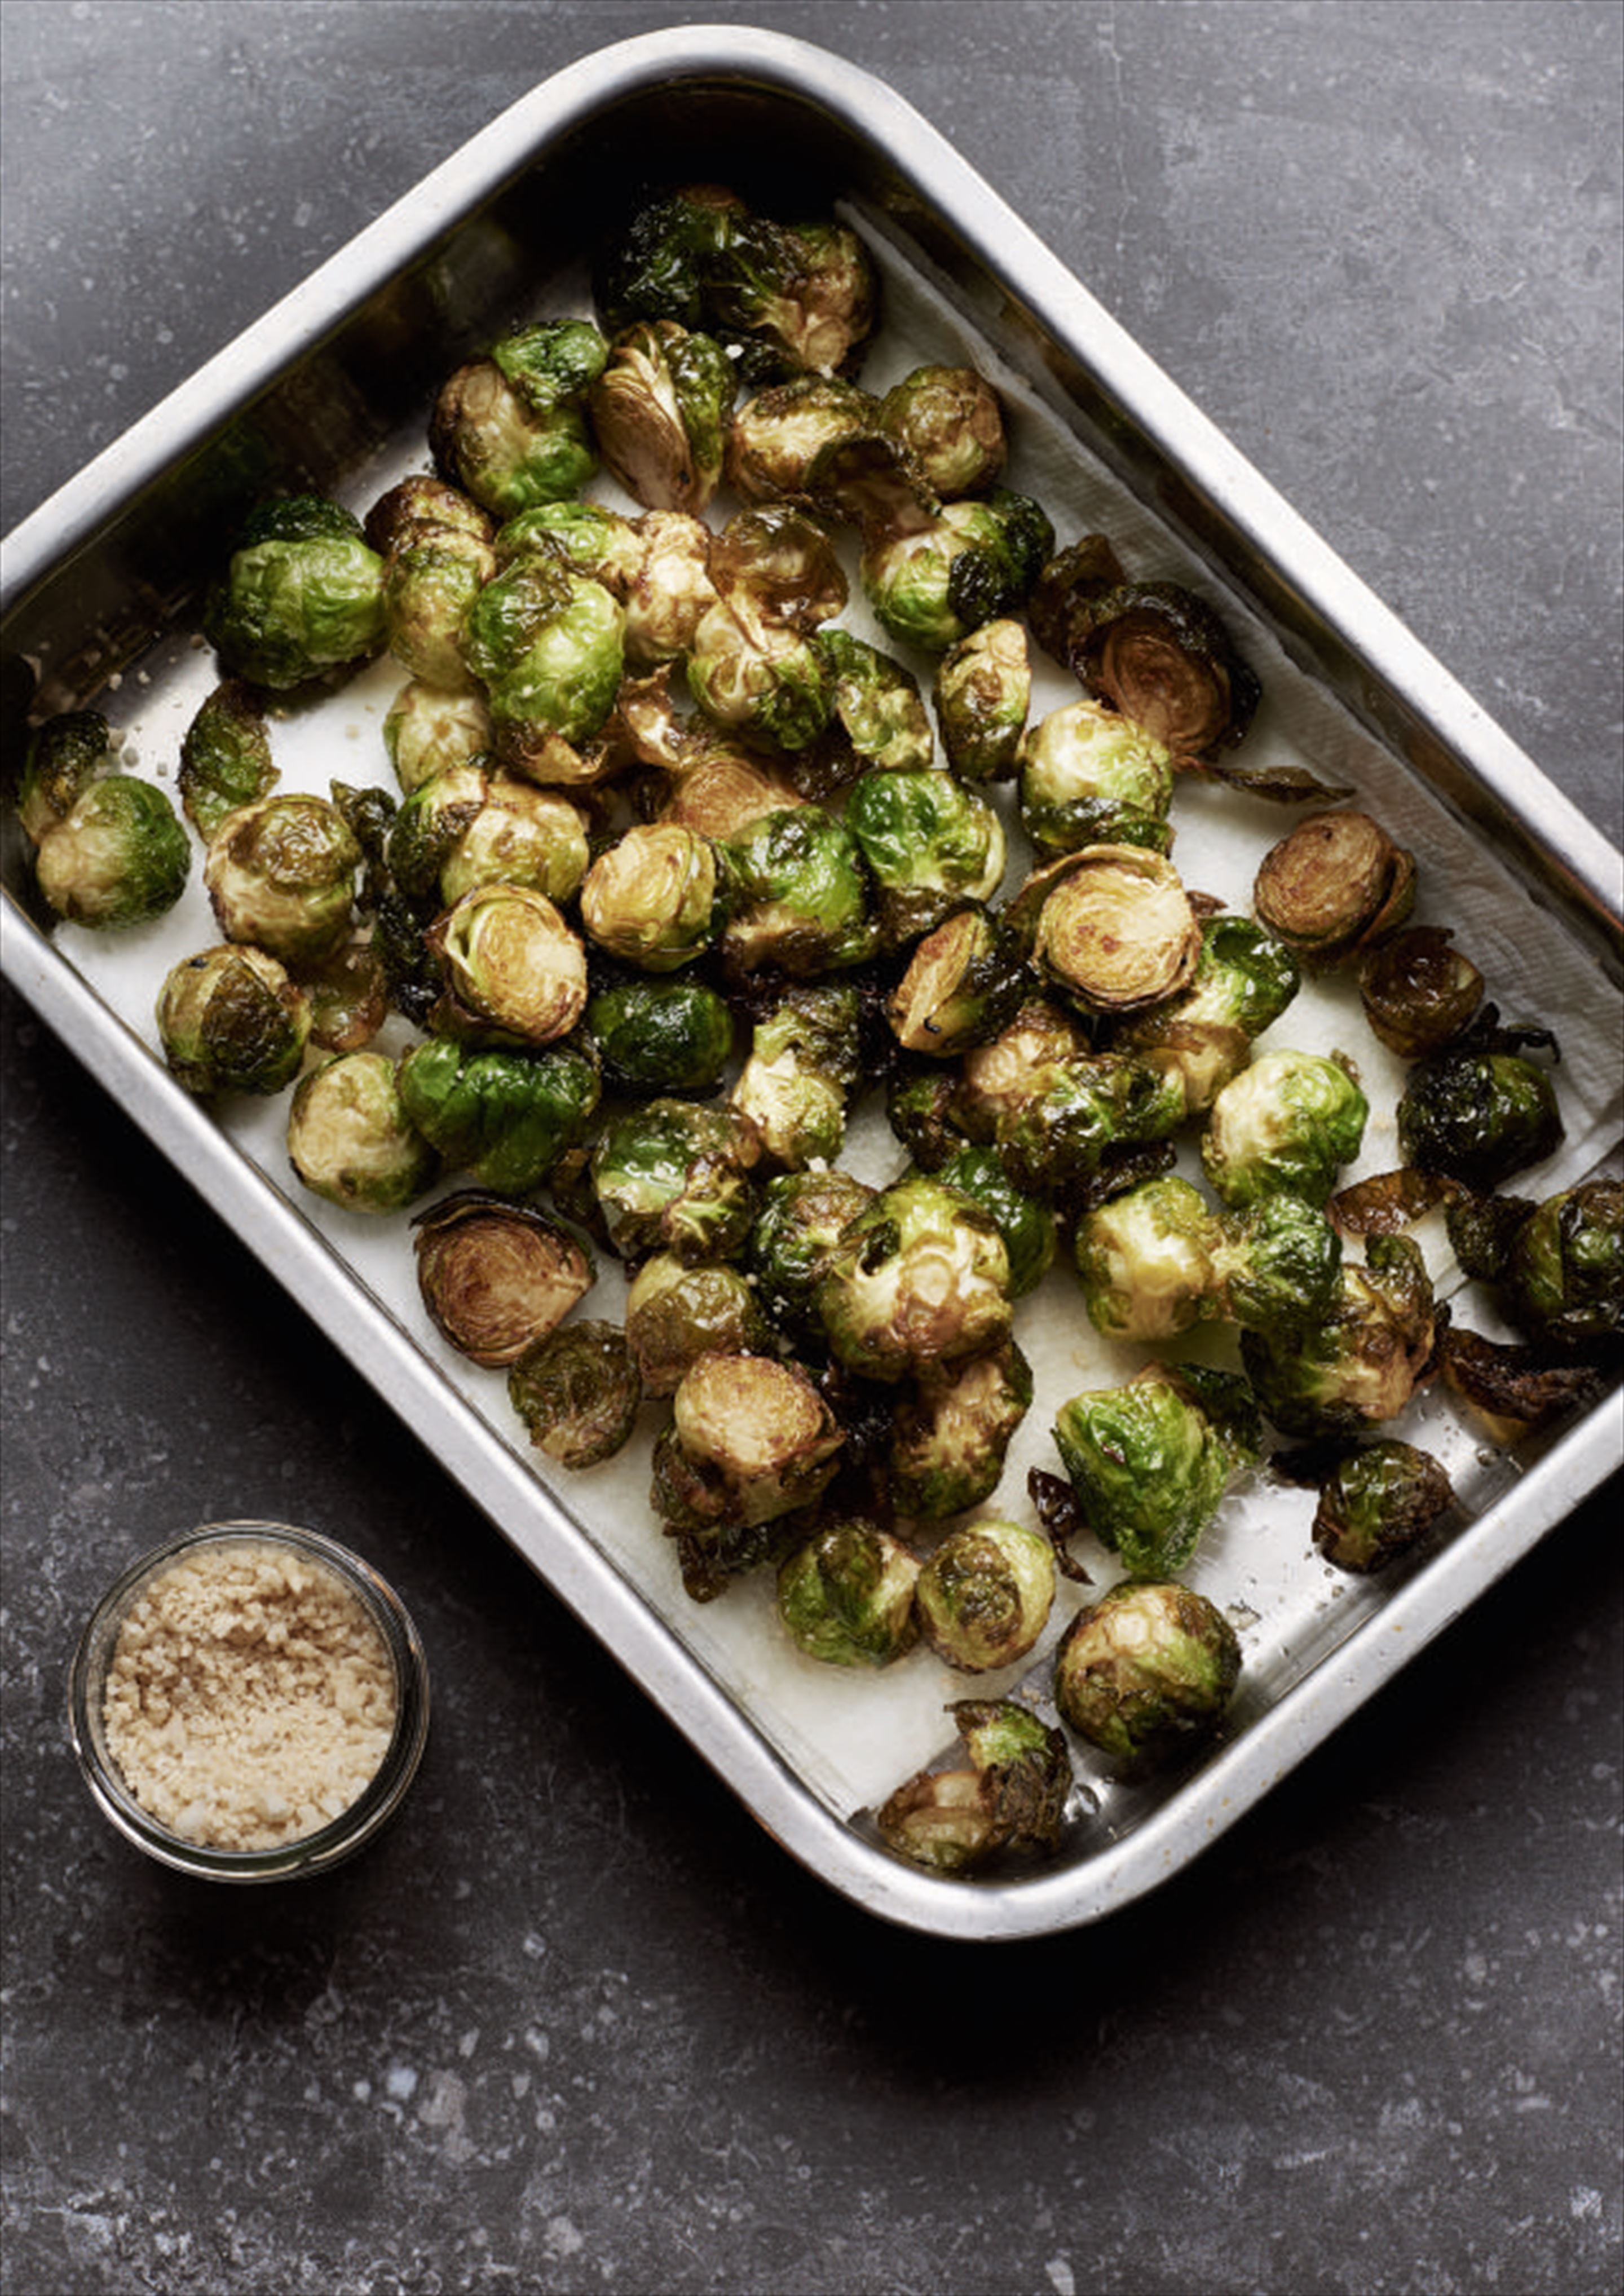 Deep-fried Brussels sprouts